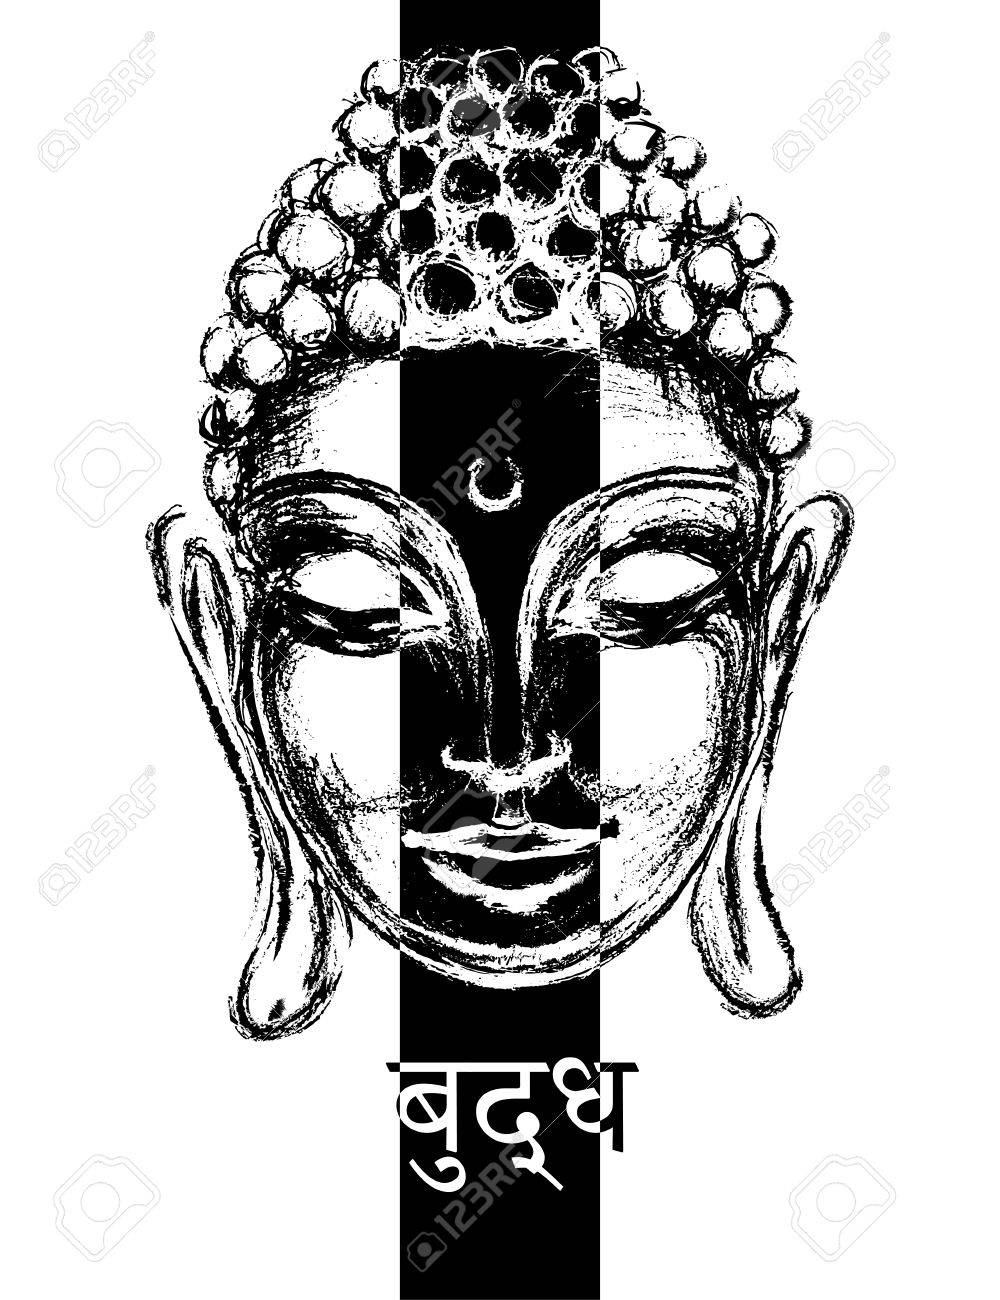 Sketch Head Smiling Buddha In Meditation And Nirvana In A State